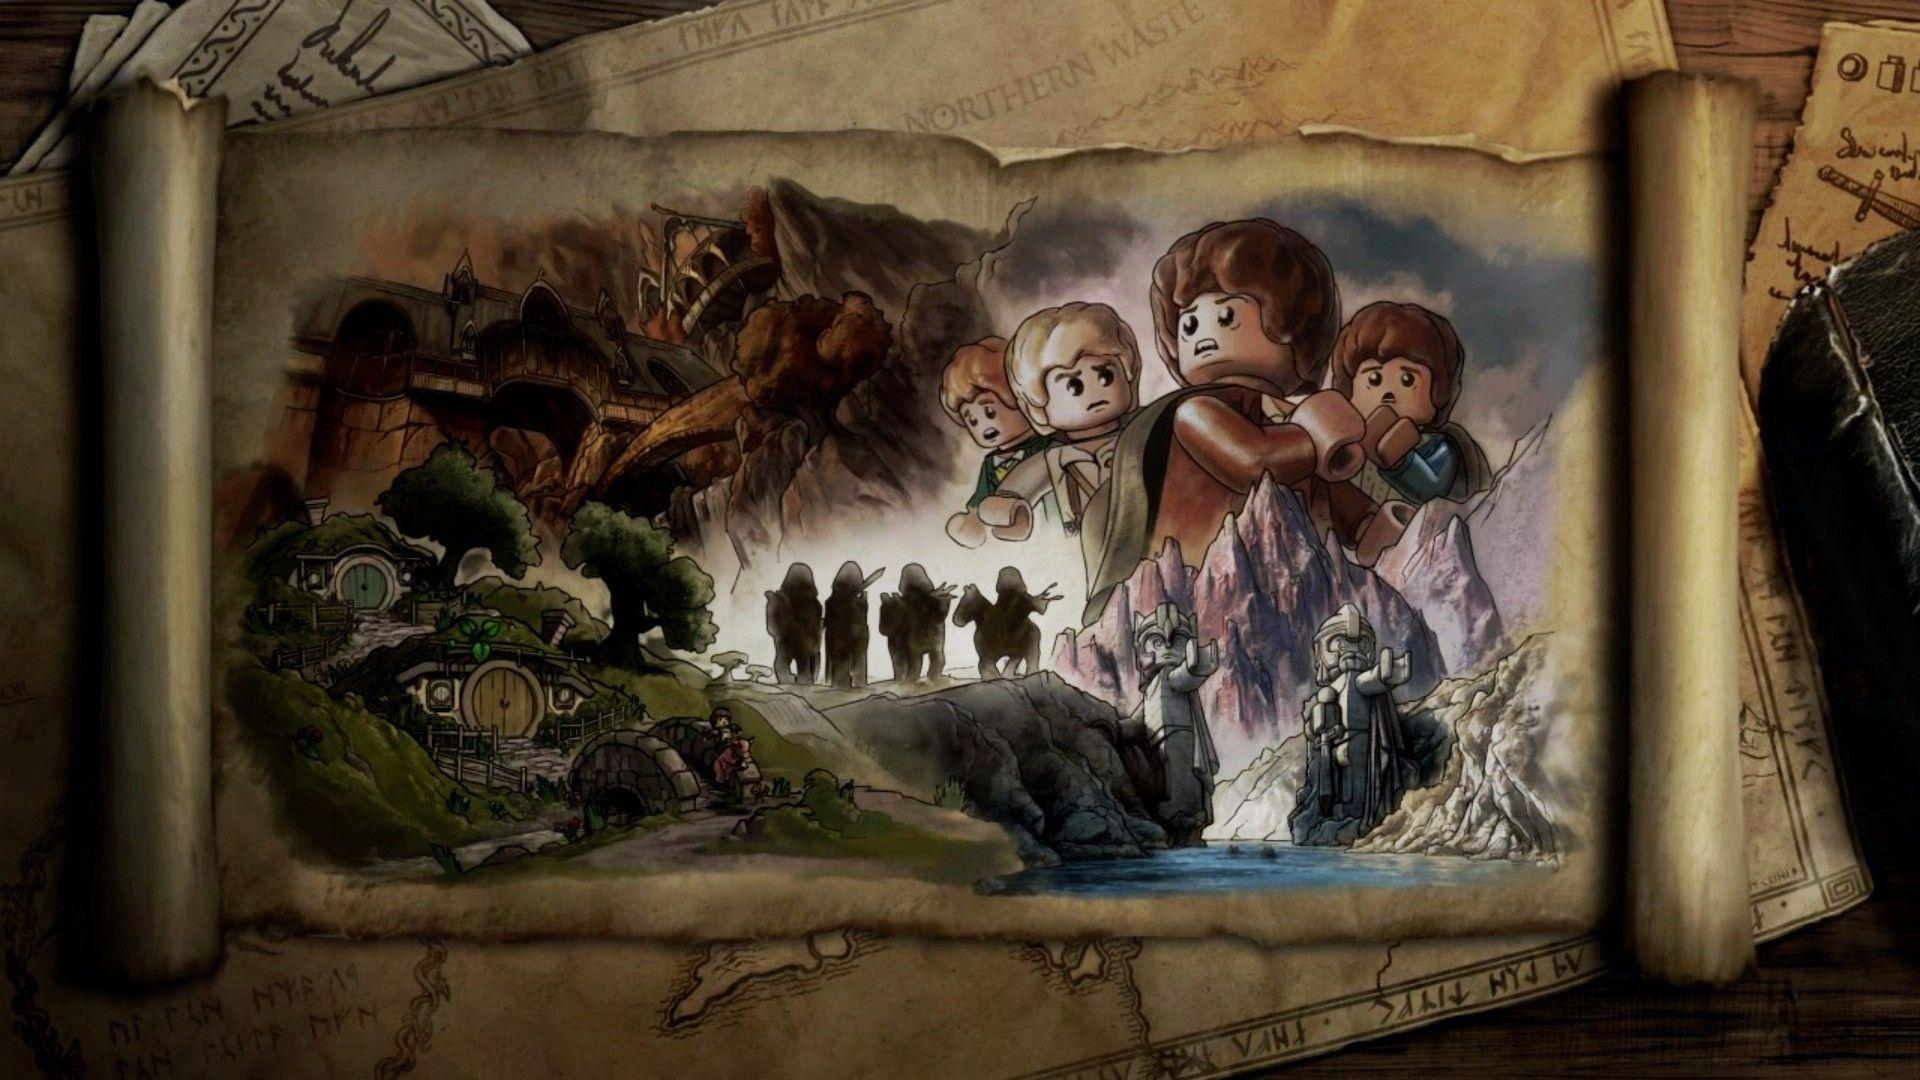 Rings The Lord of the Rings artwork The Fellowship of the Ring Legos